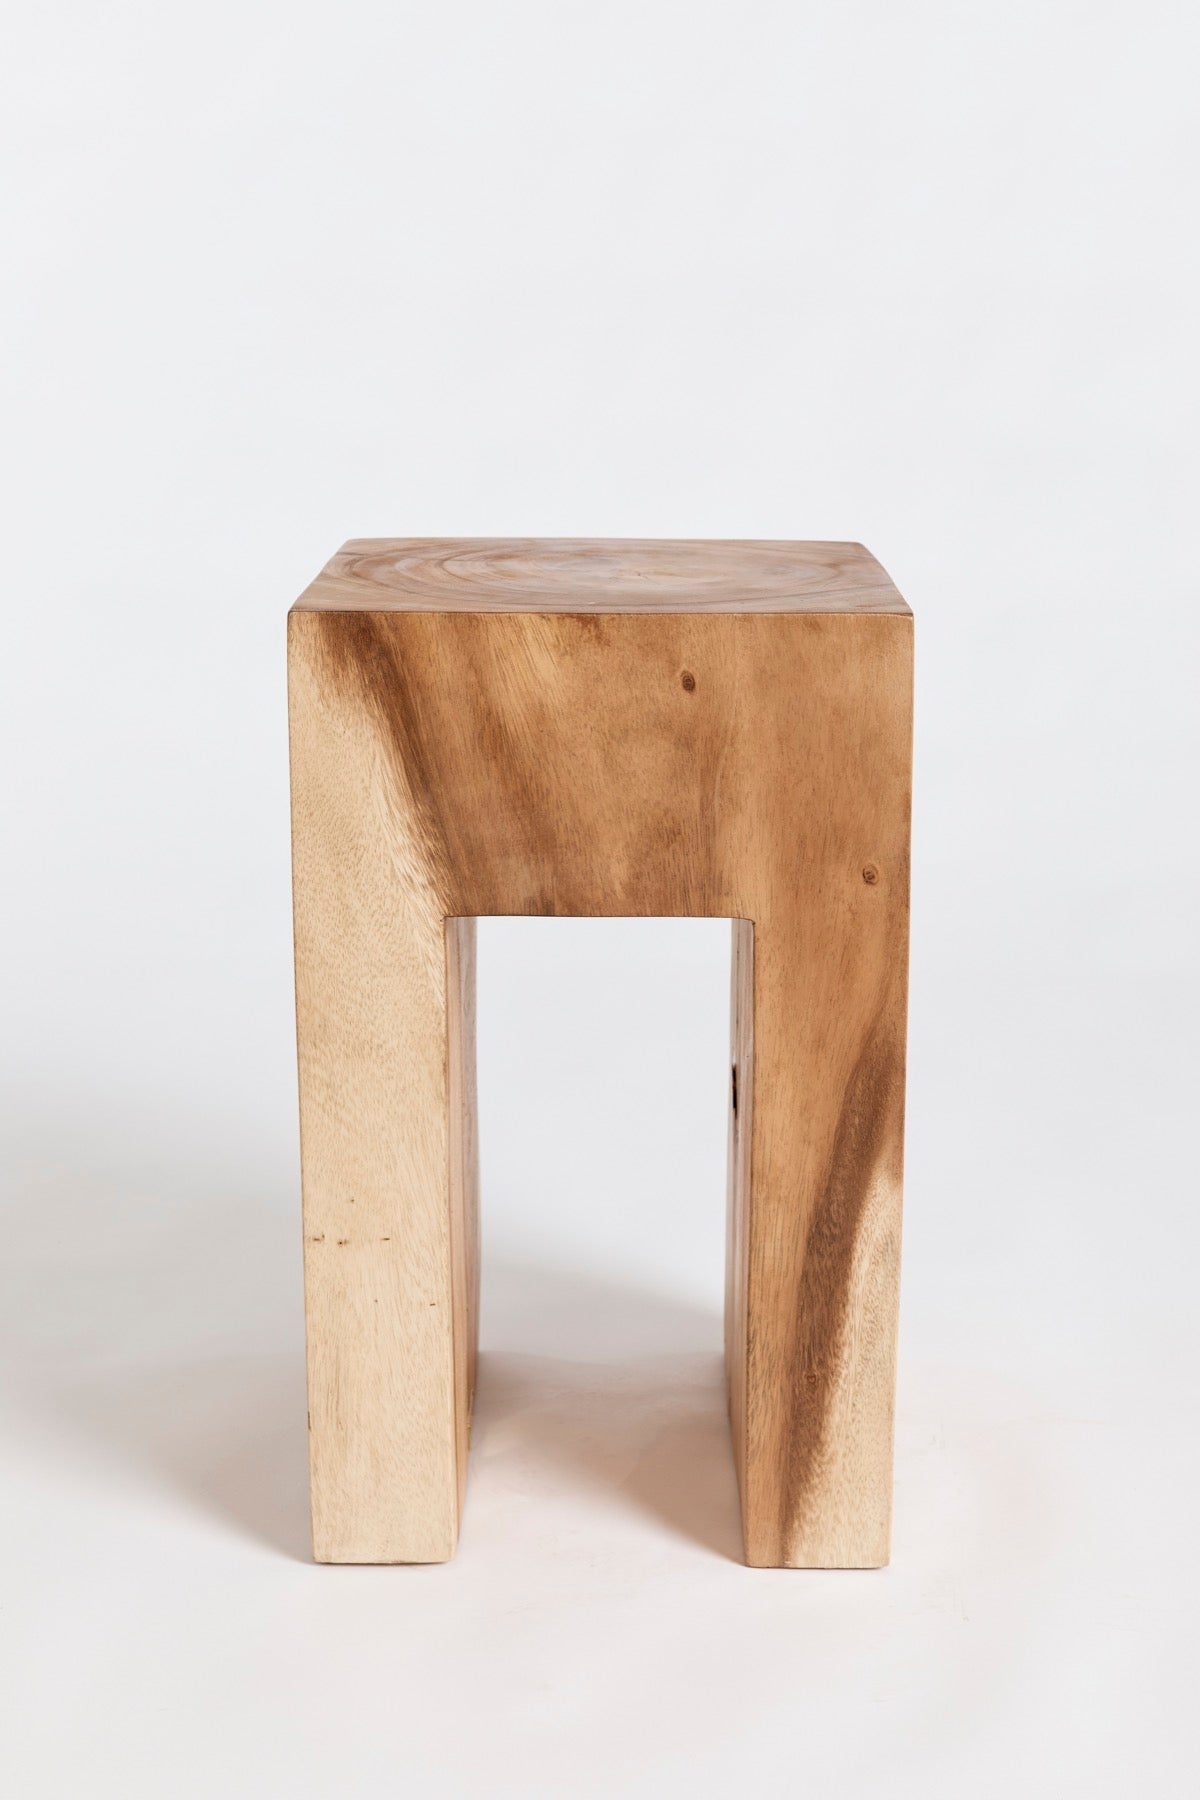 The Tavolo Tabouret